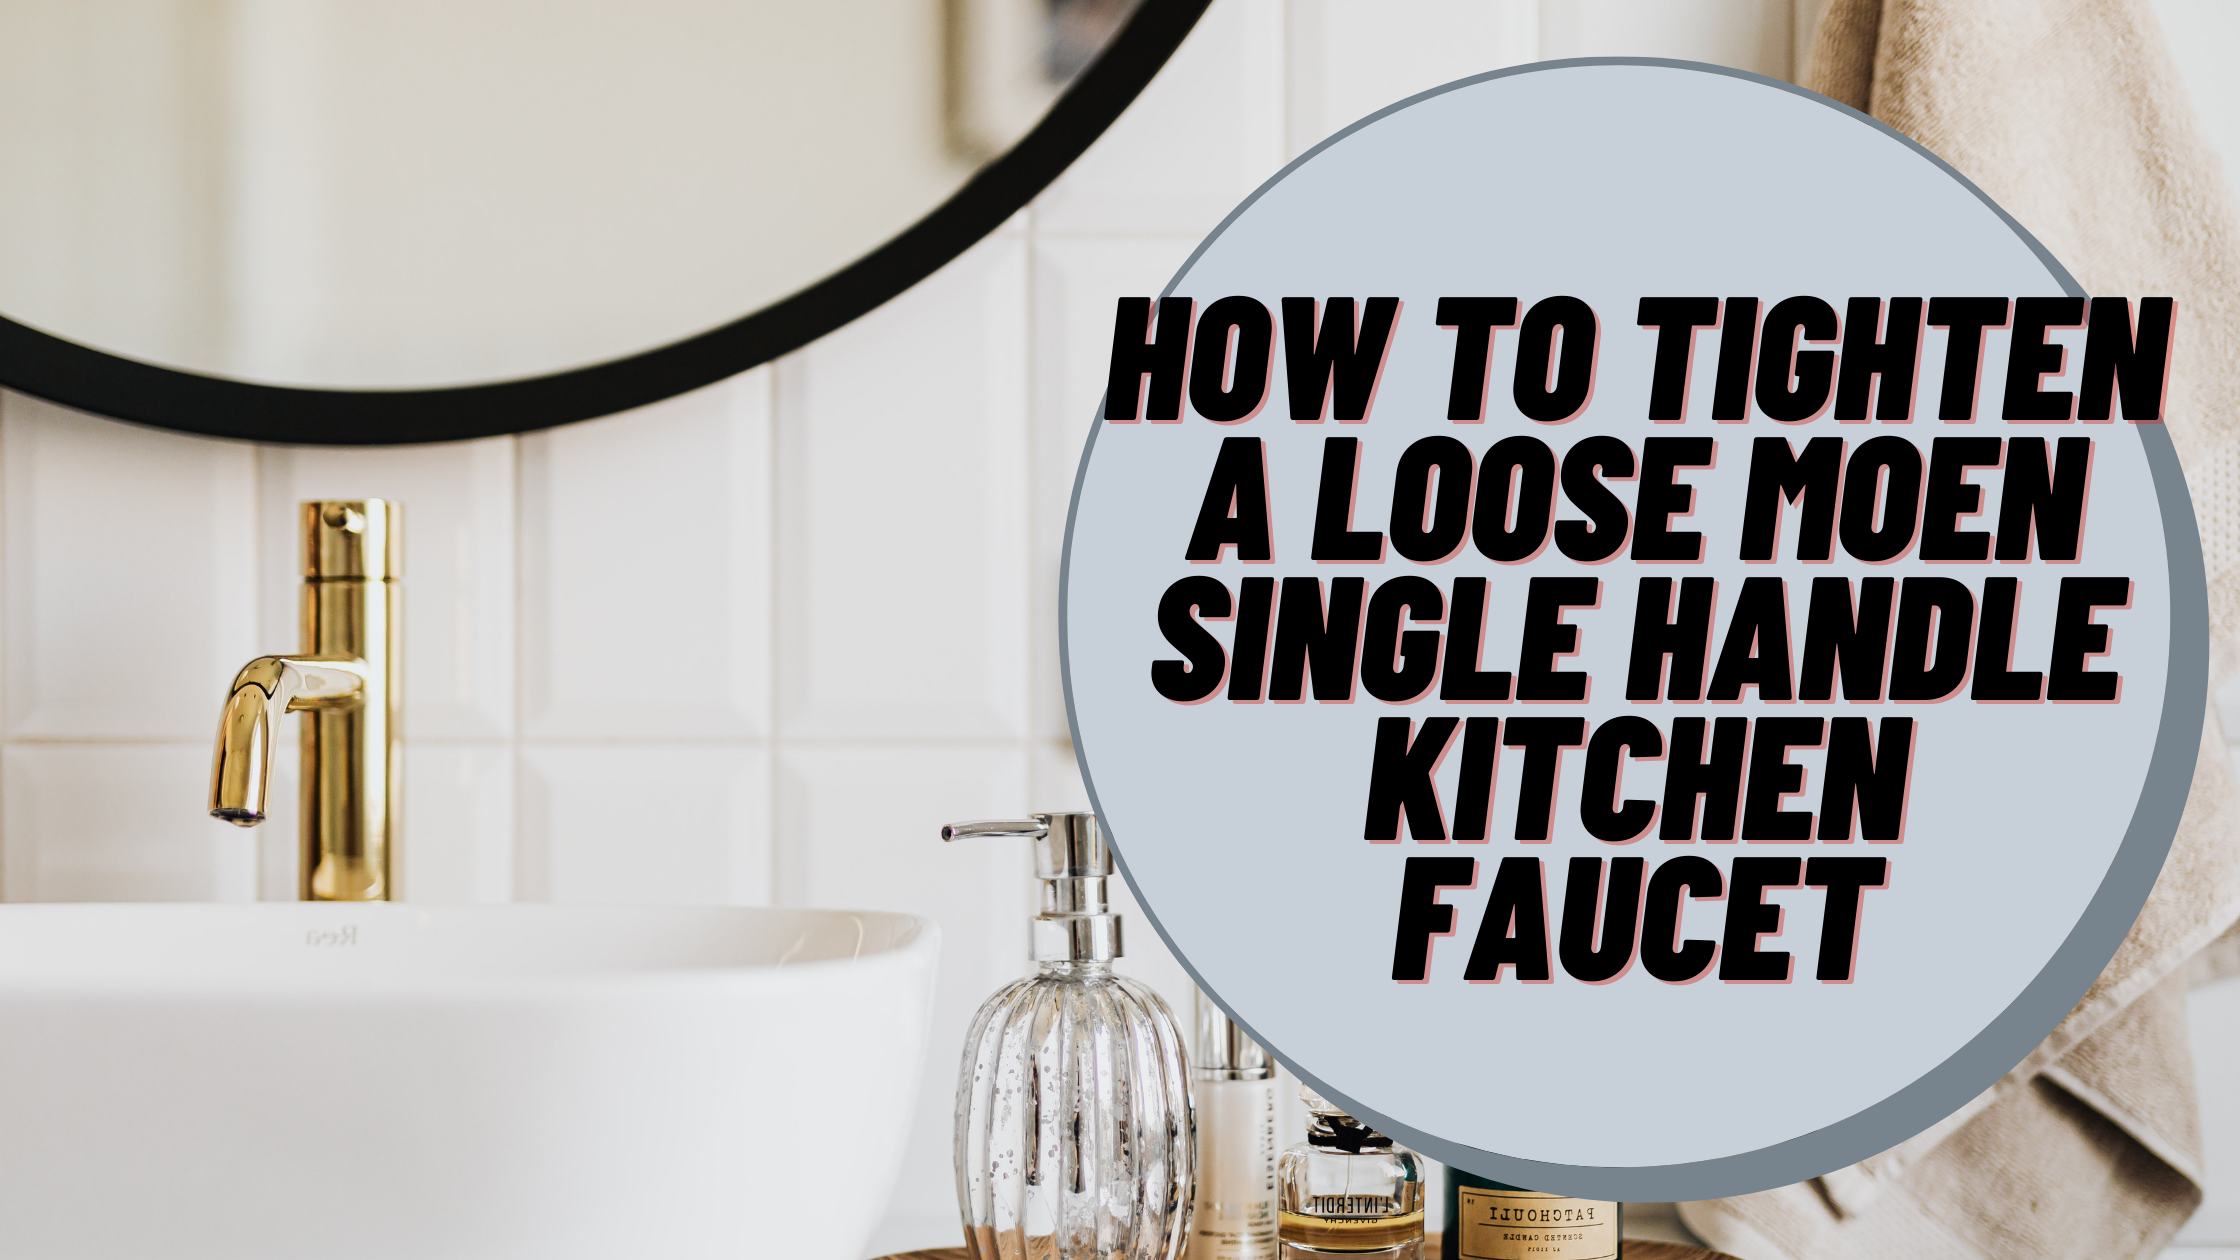 How to Tighten a Loose Moen Single Handle Kitchen Faucet